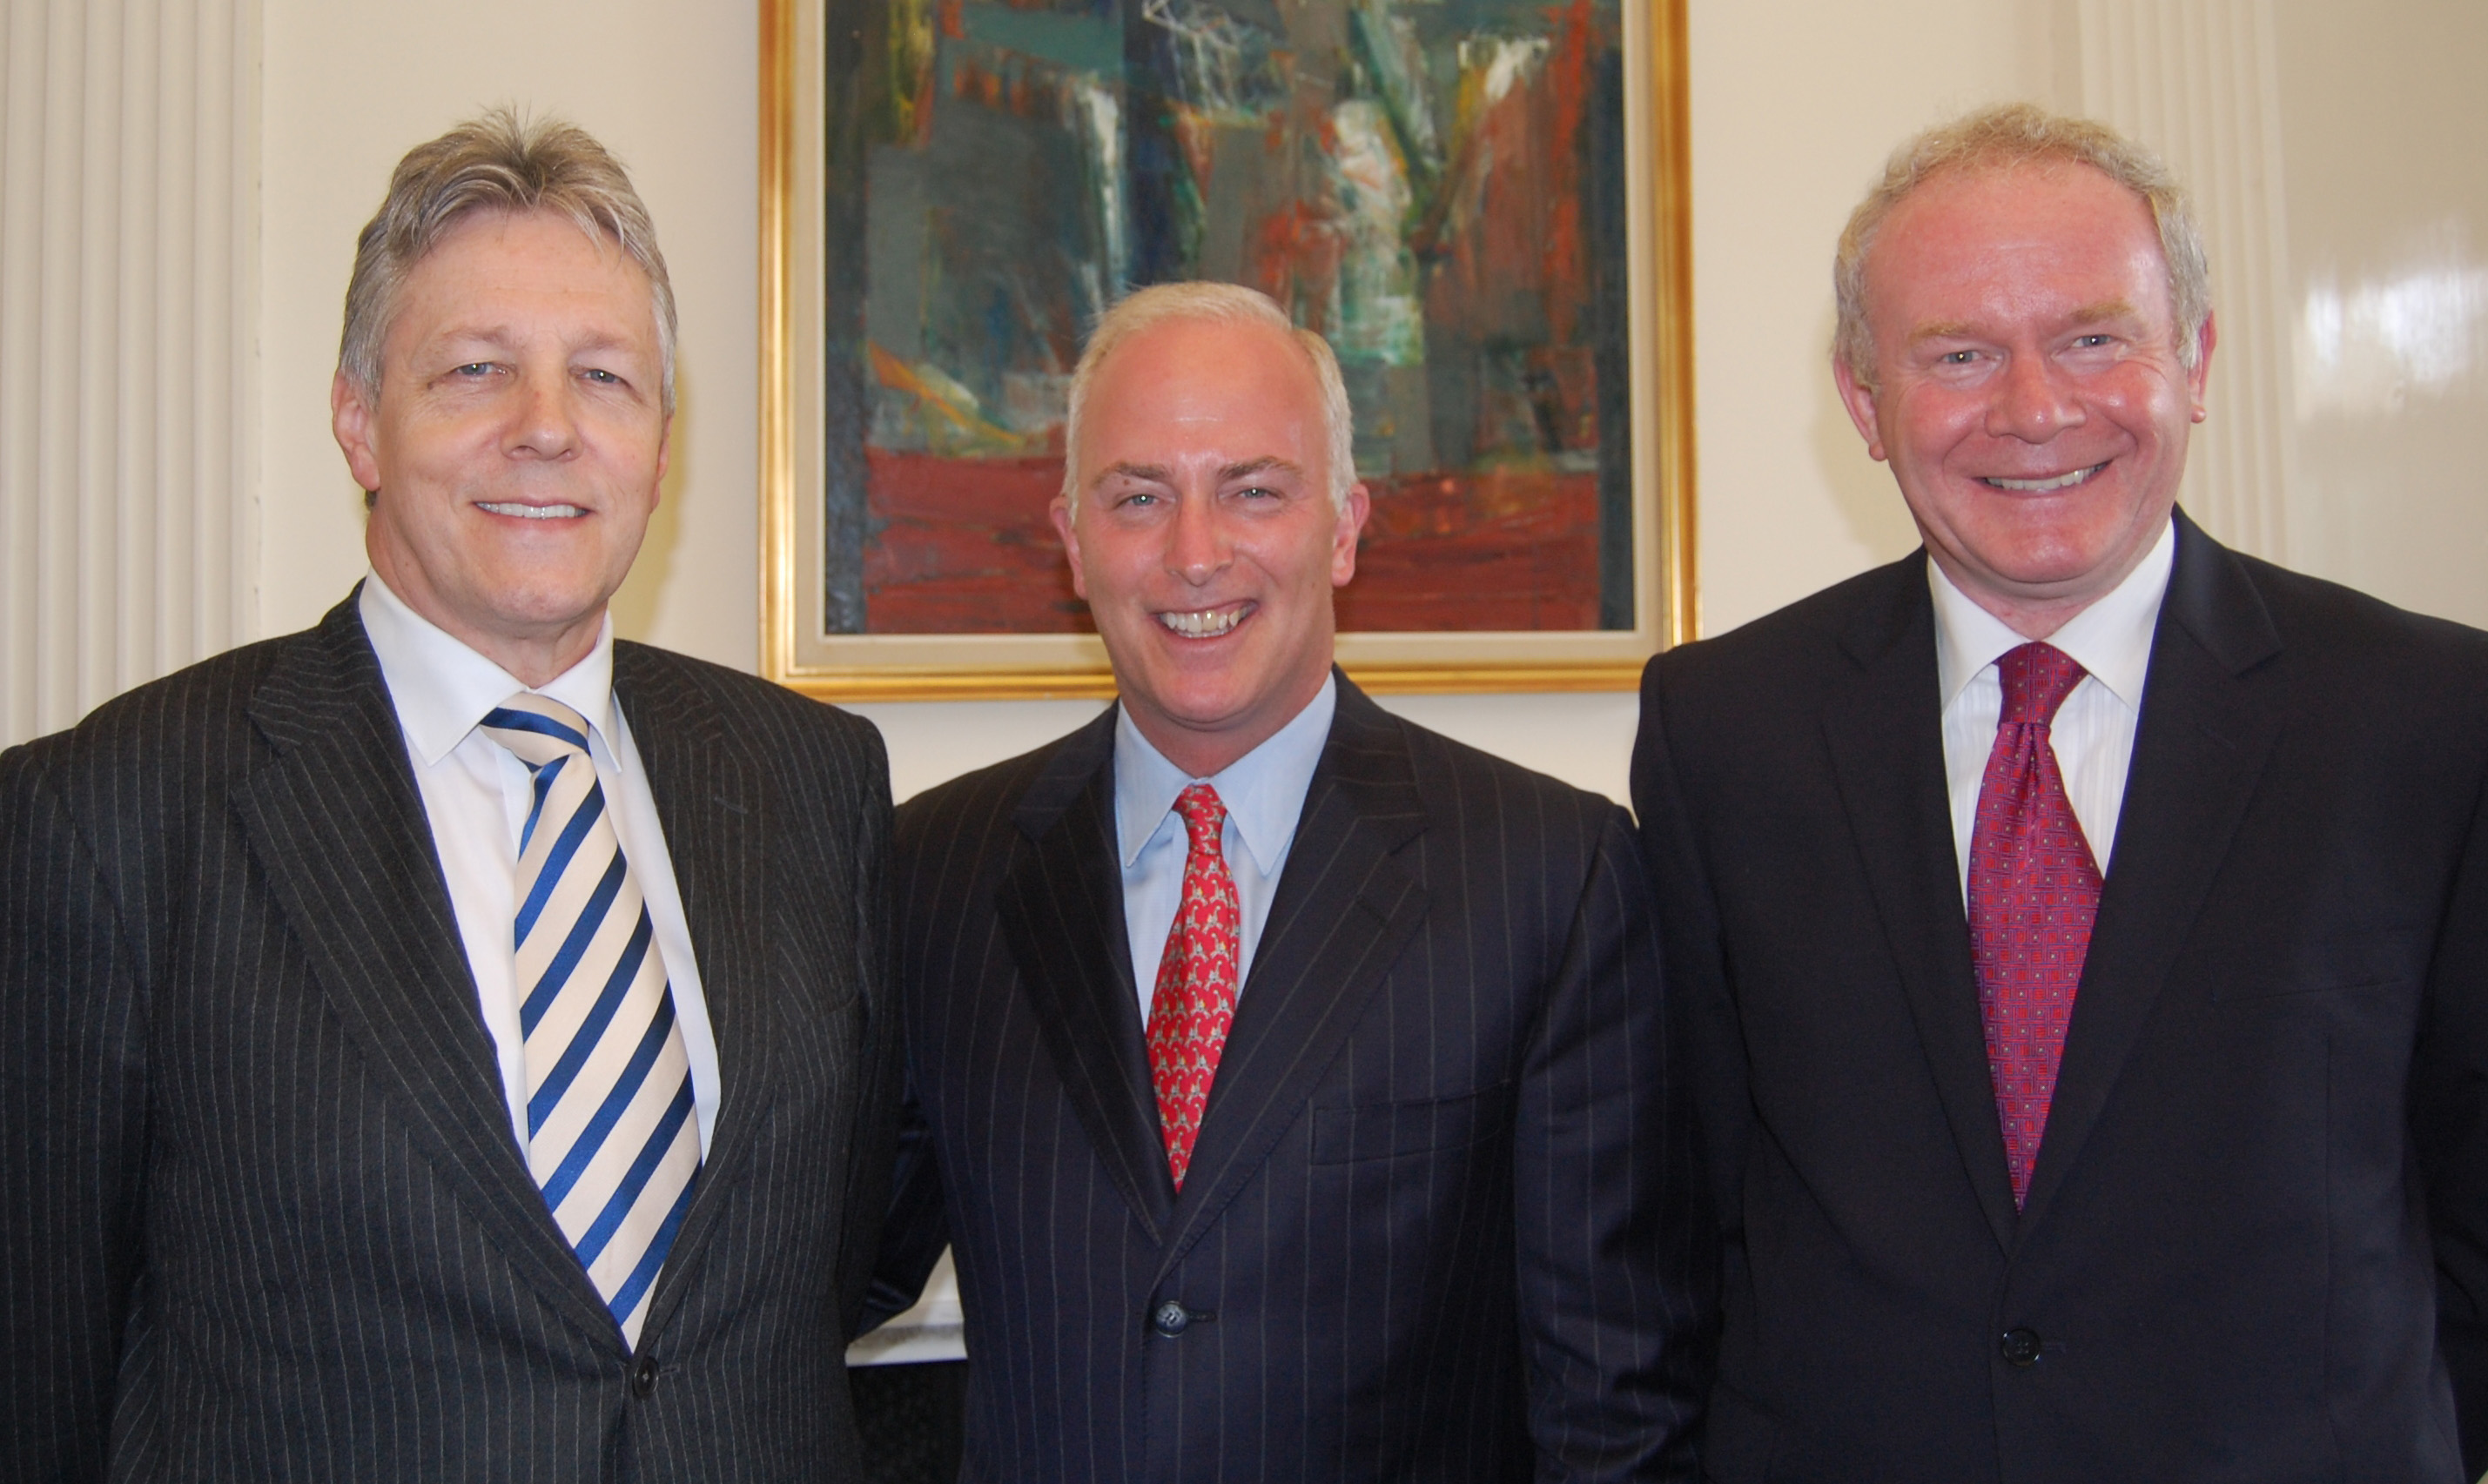 Bob McCann (center) With First Minister Robinson and Deputy Minister McGuinness at Stormont Castle in June 2009.